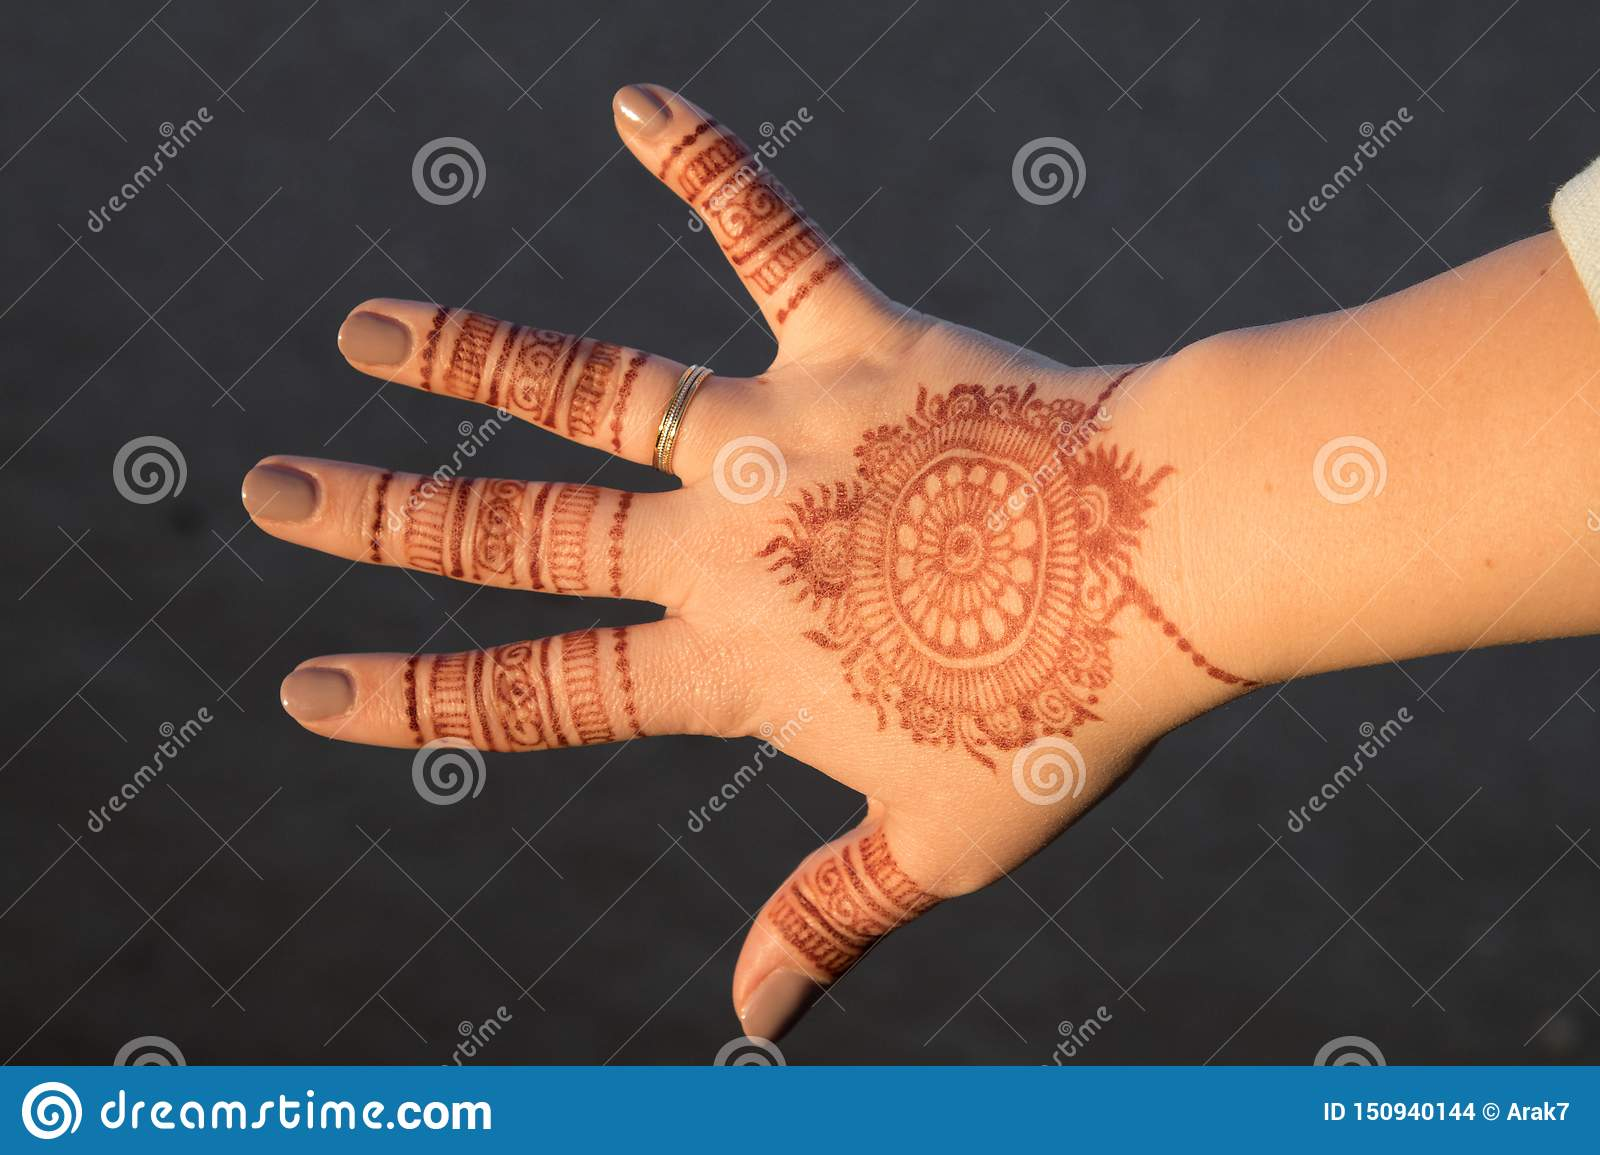 Henna Mehndi A Form Of Body Art From Ancient India Editorial Stock Image Image Of Ceremony Matrimony 150940144